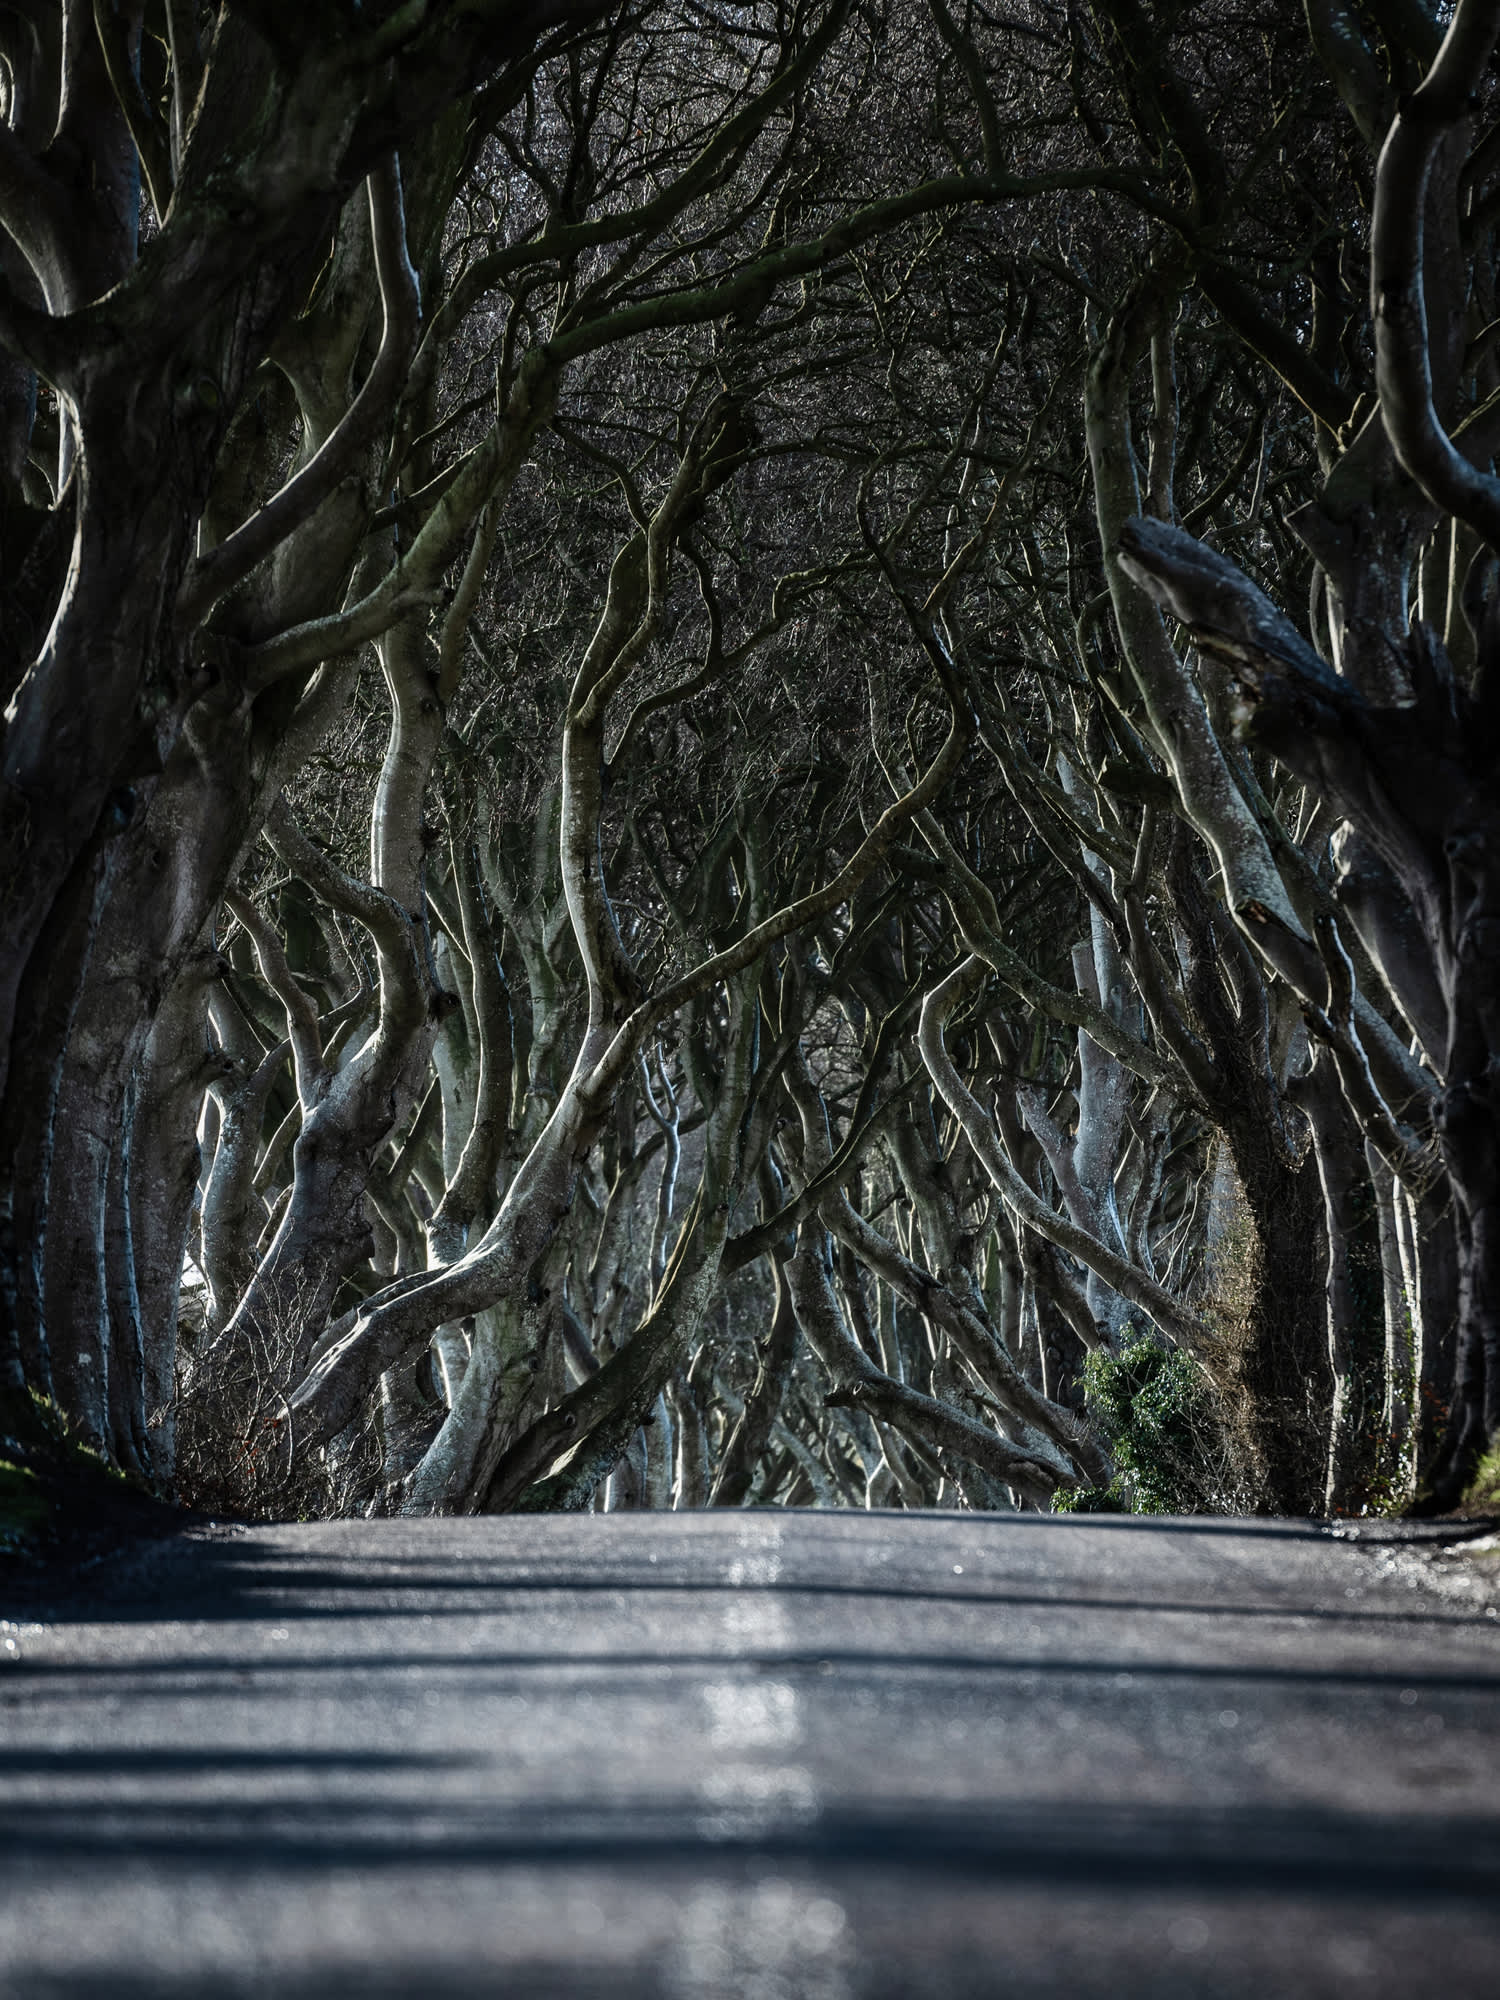 A road leading through the dark hedges Northern Ireland, United Kingdom.